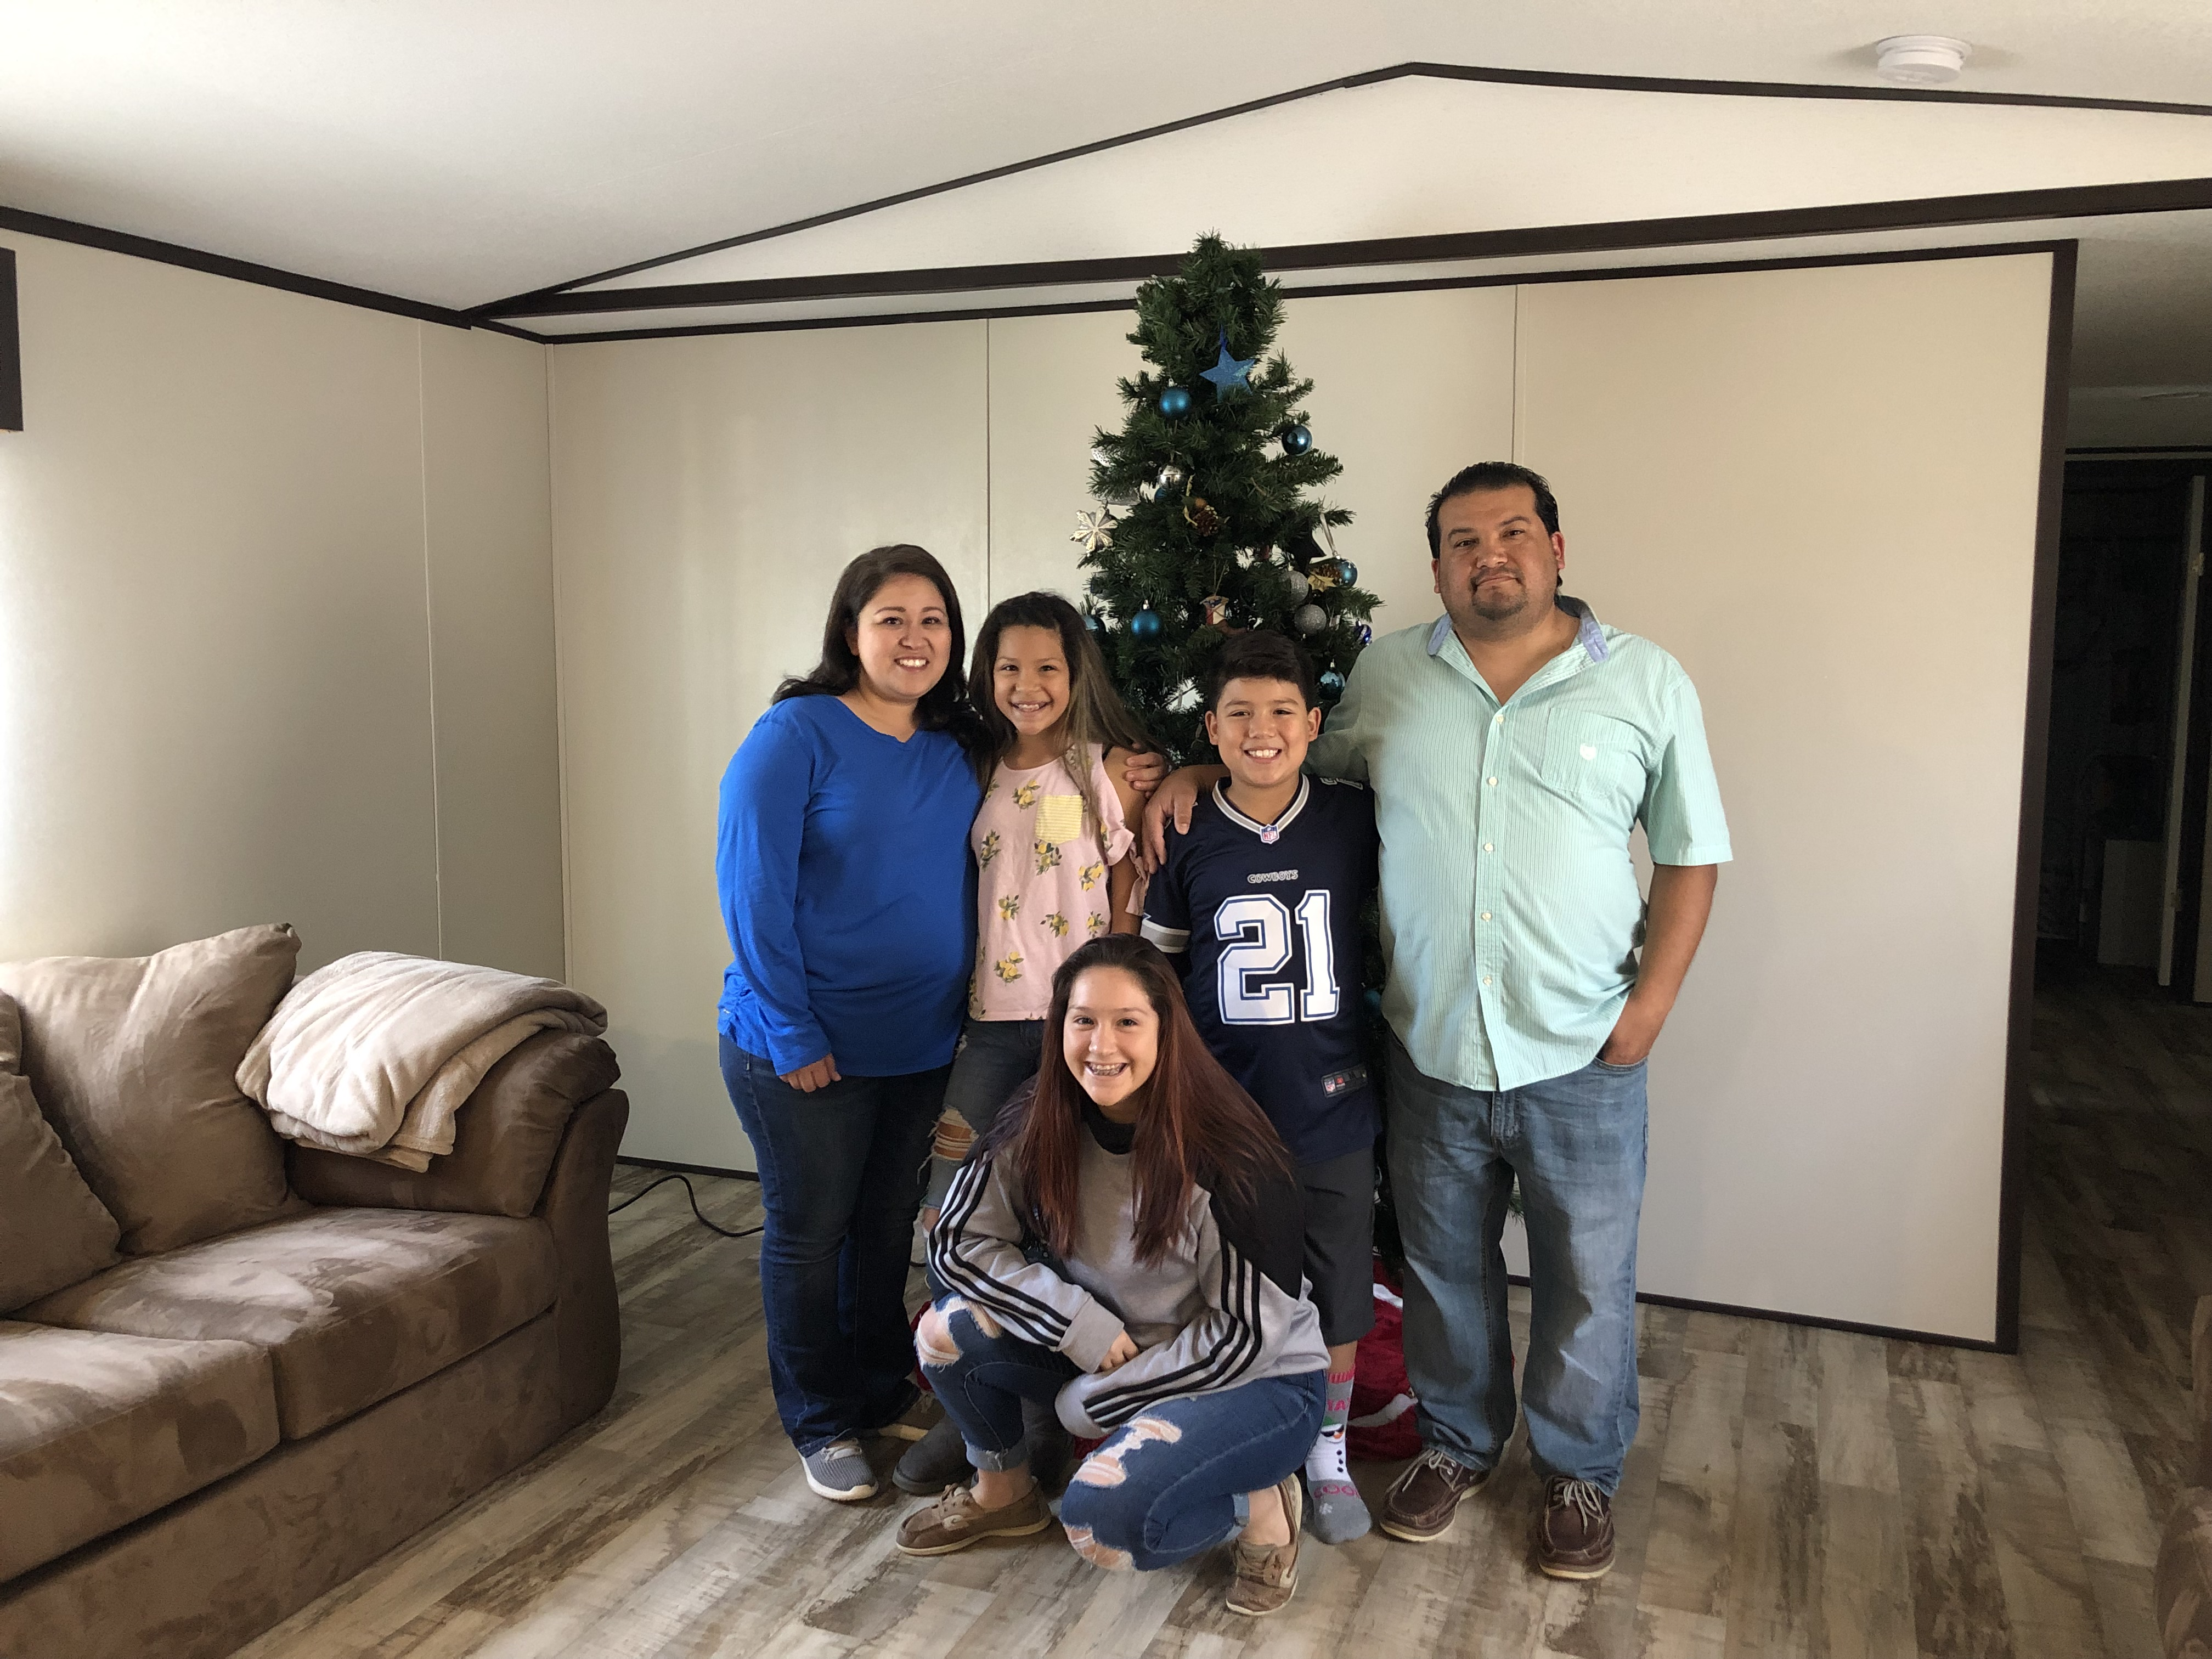 Family For Christmas.Woodsboro Family Glad For New Home In Time For Christmas